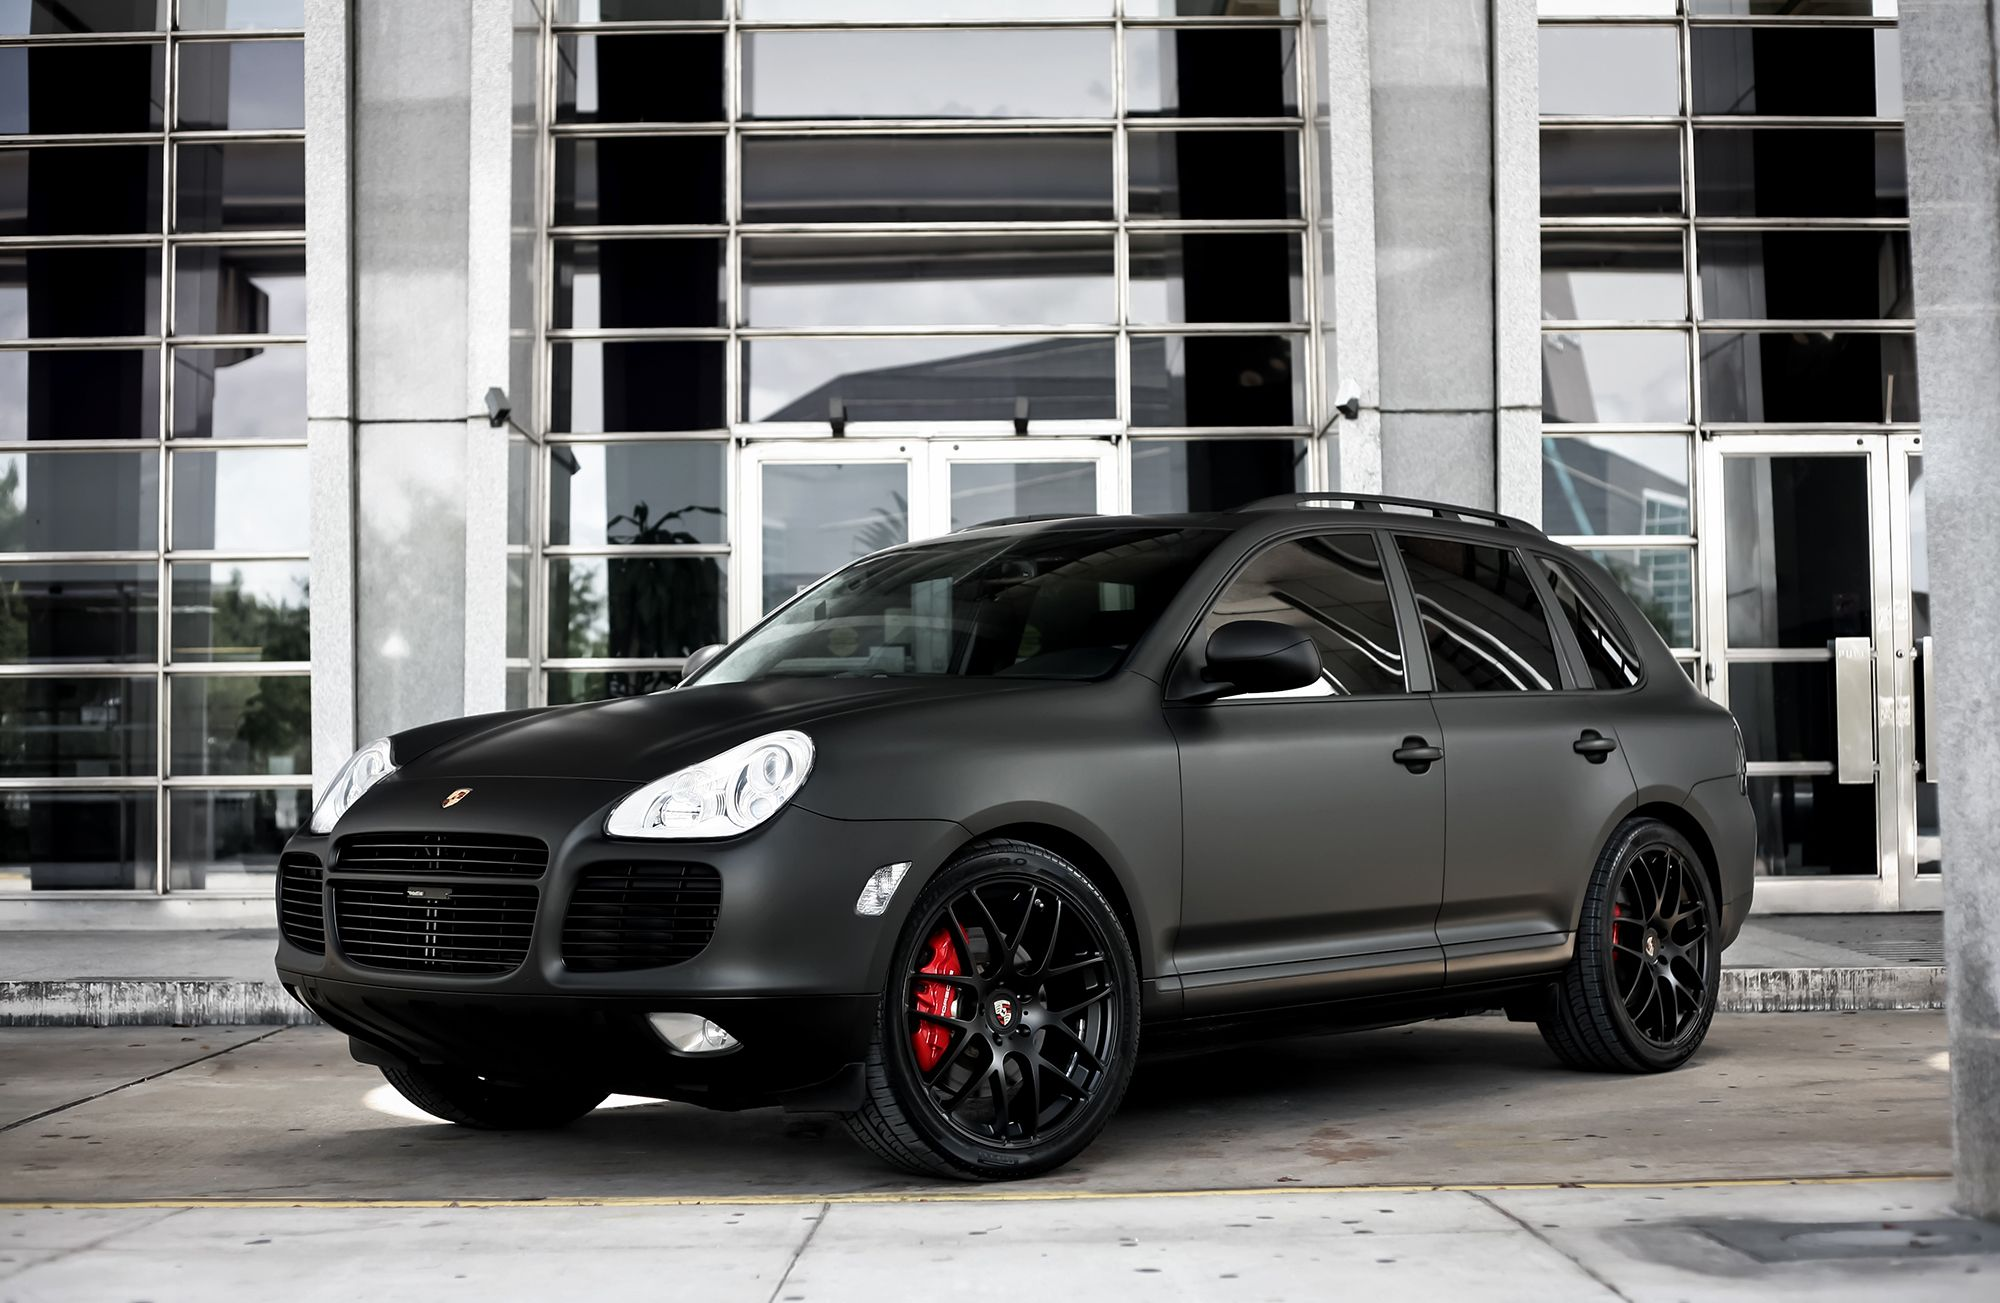 Customized Porsche Cayenne Turbo S With Full Matte Black Exterior Wrap Smoked Lights Painted Black Exterior Tri Cayenne Turbo Porsche Suv Porsche Cayenne Gts